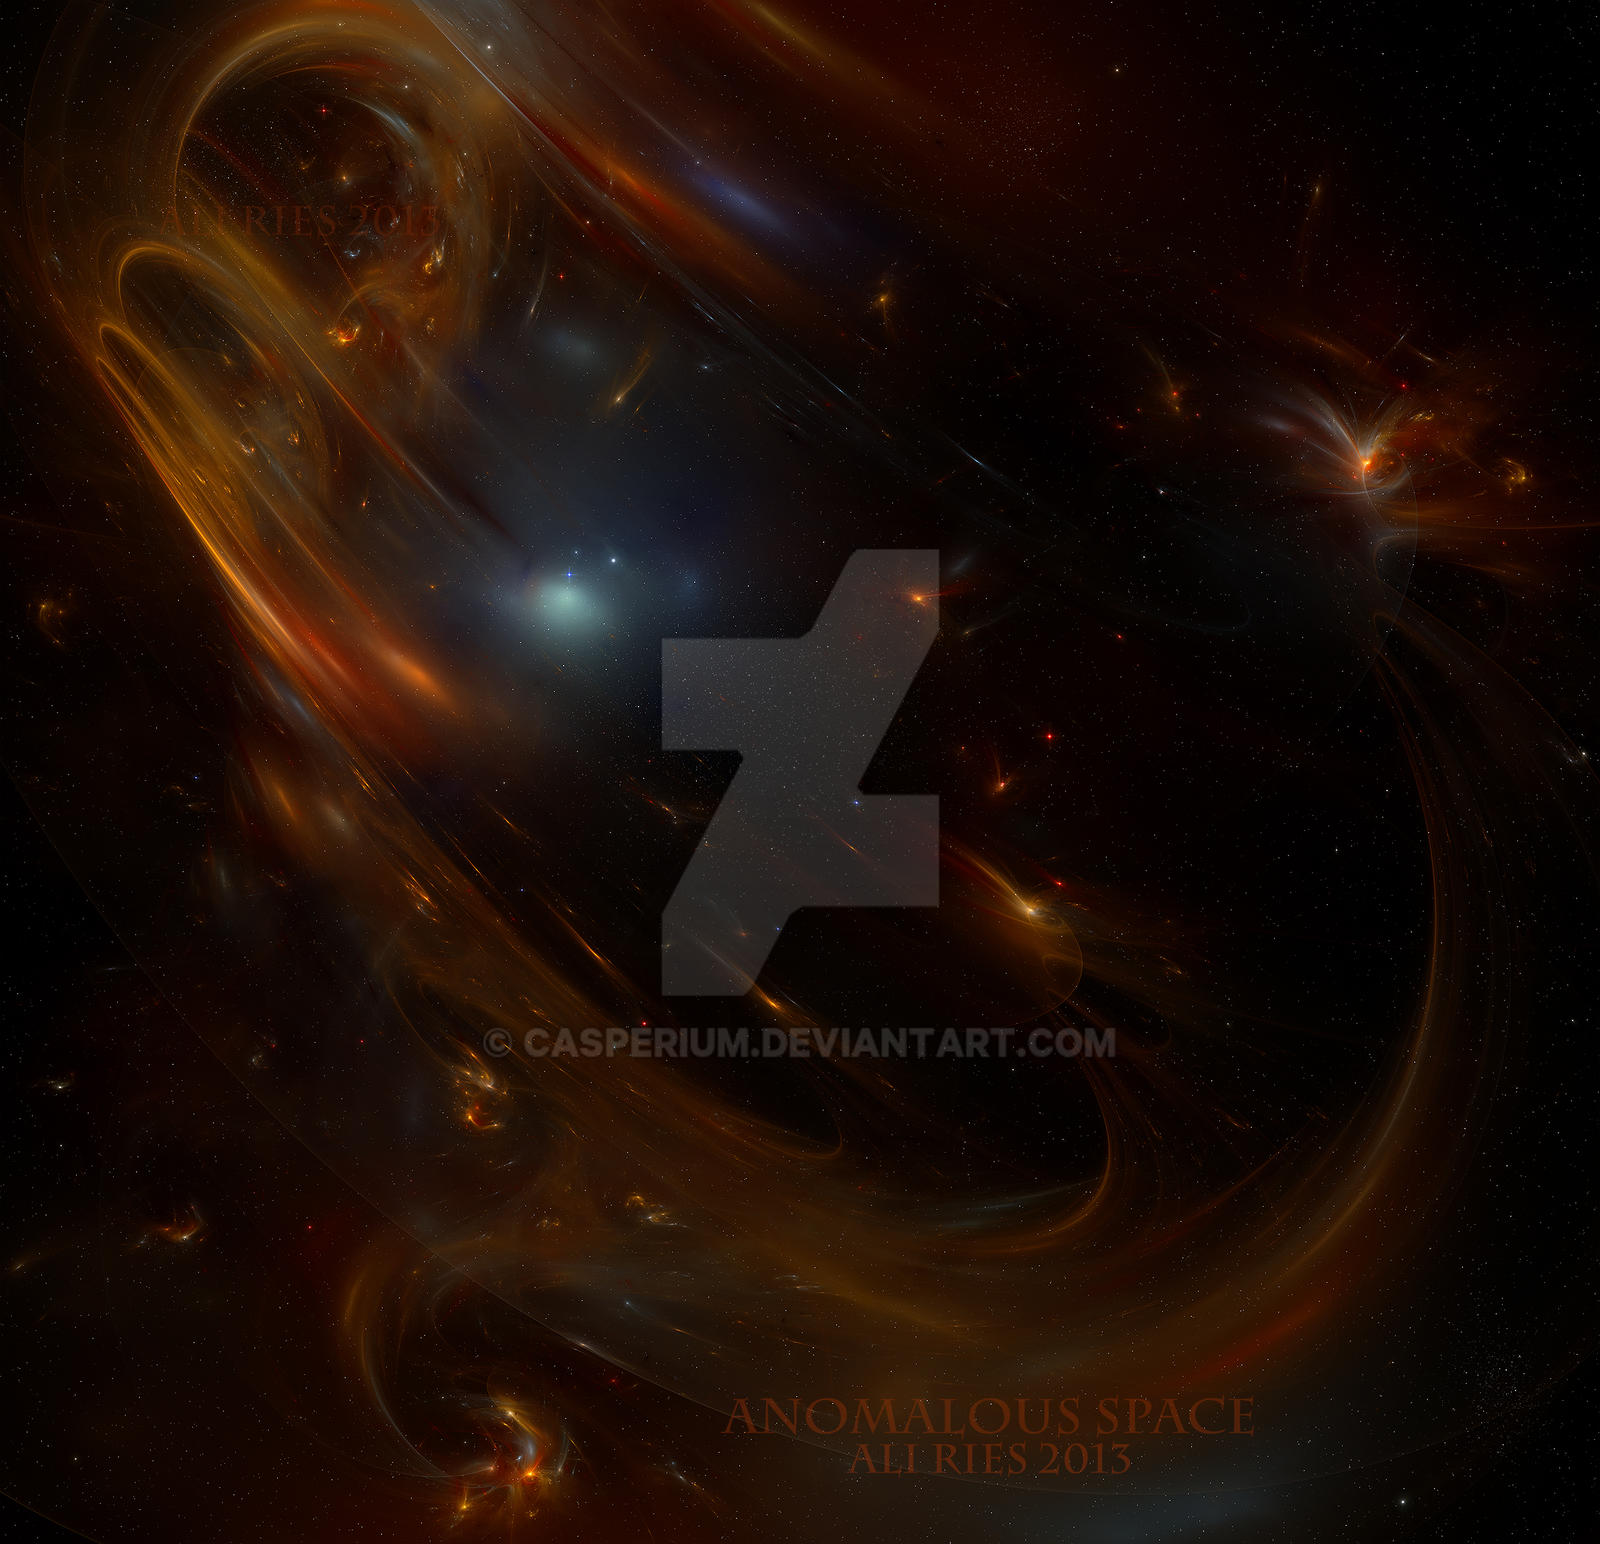 Anomalous Space by Casperium